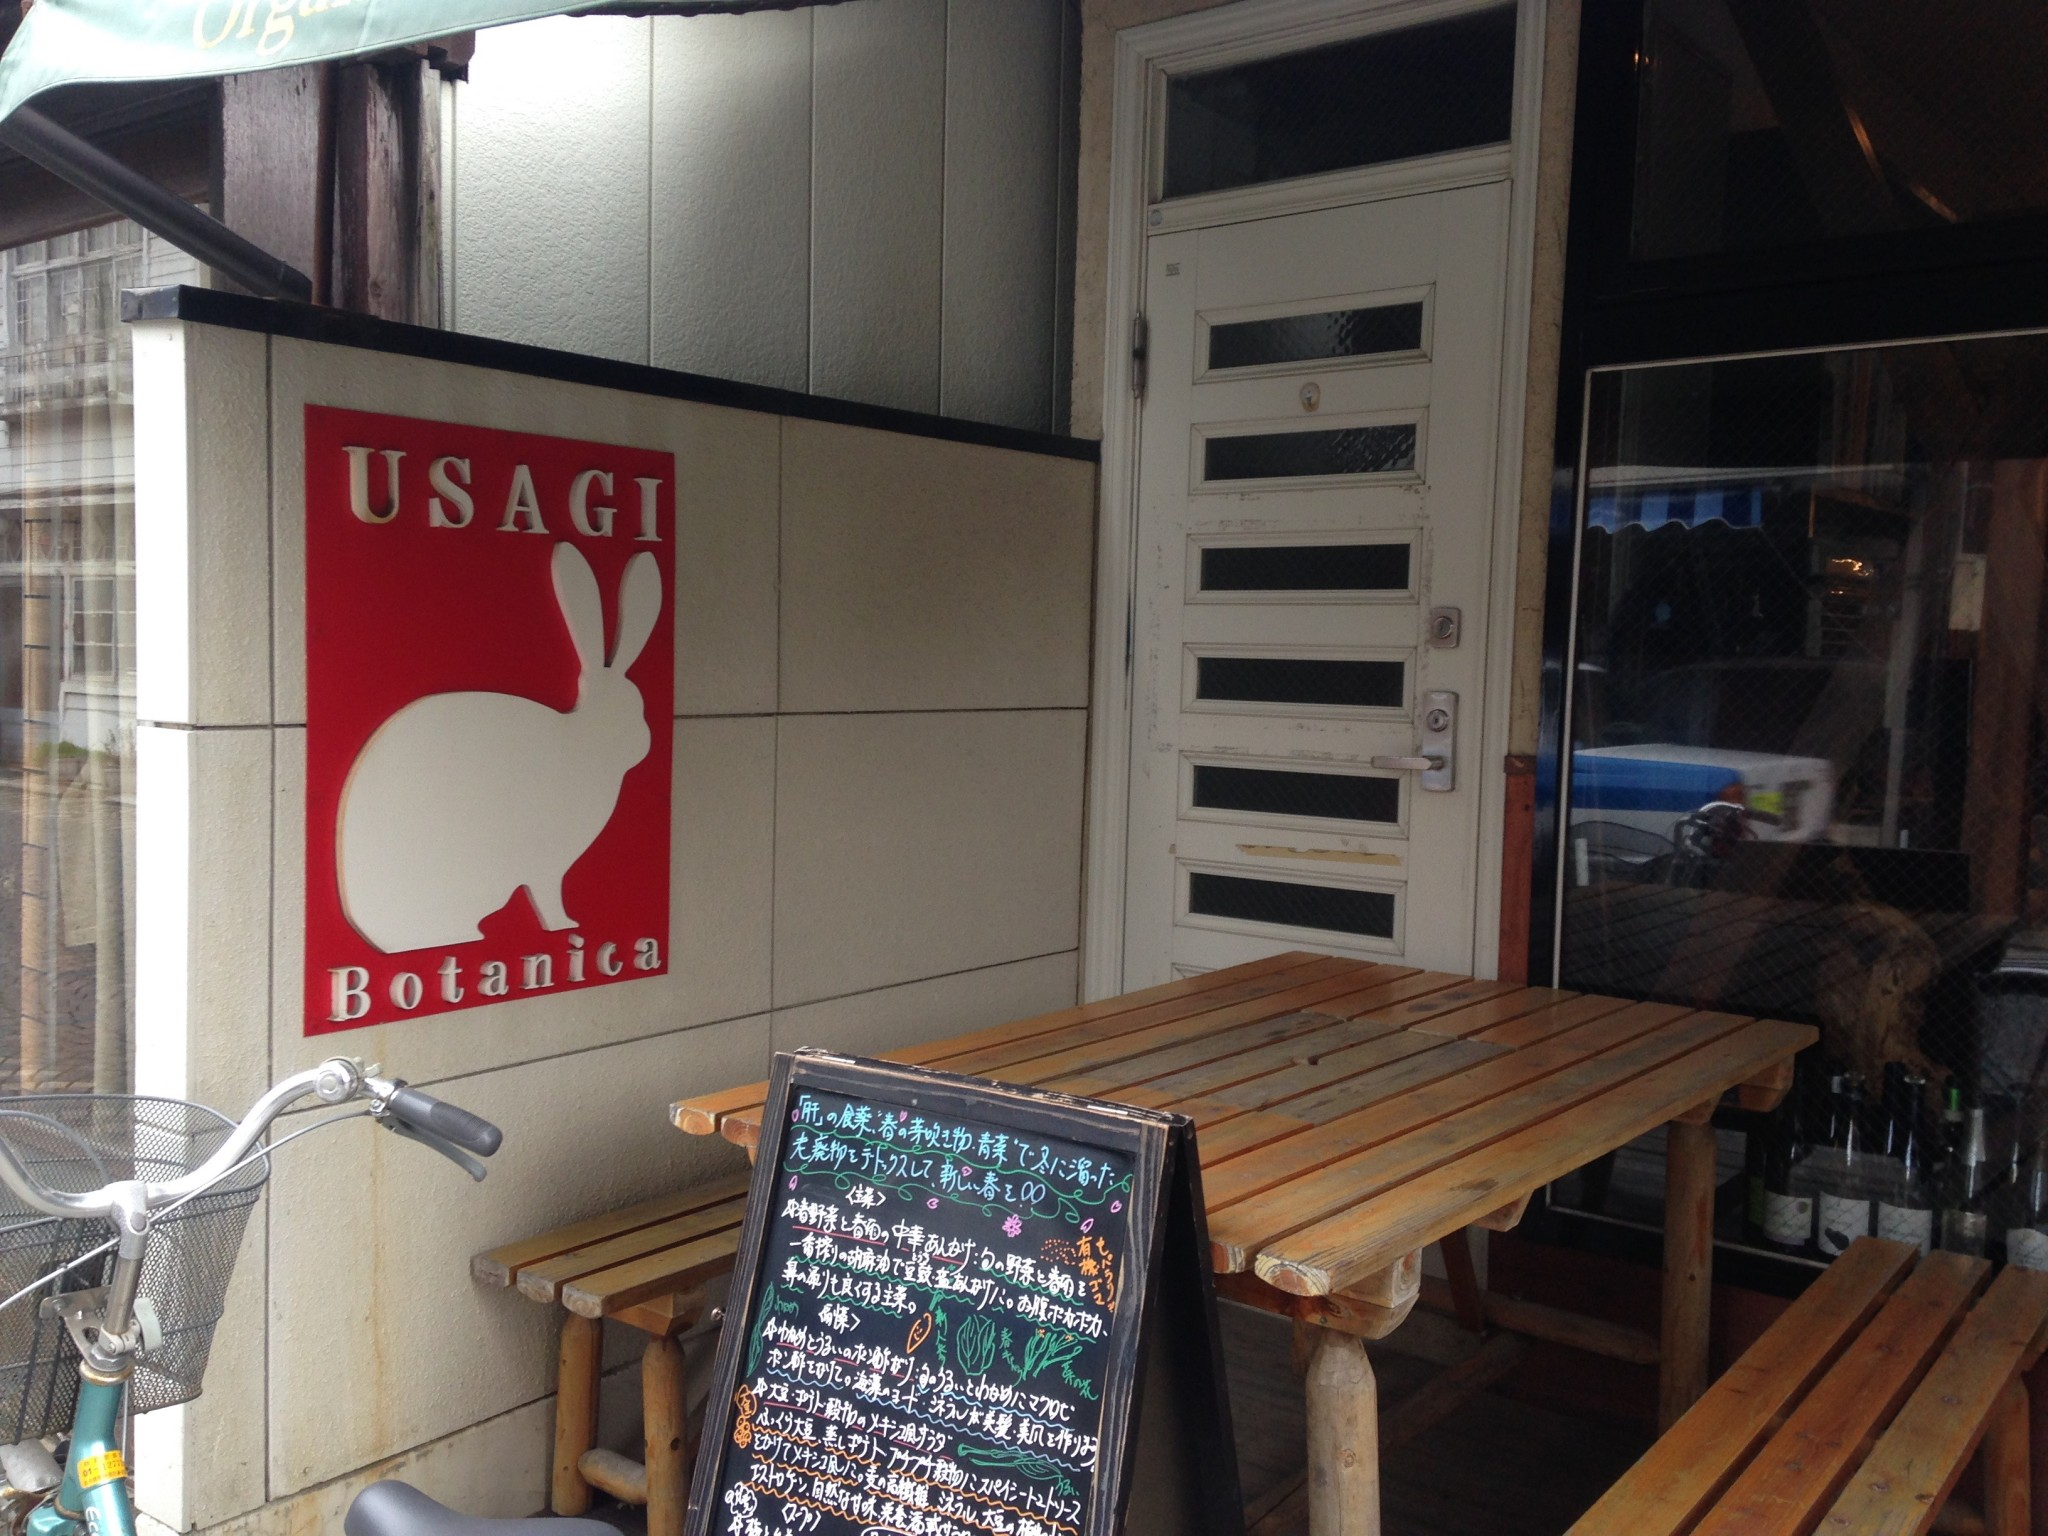 Vegetarian? Why not give this macrobiotic restaurant a try?